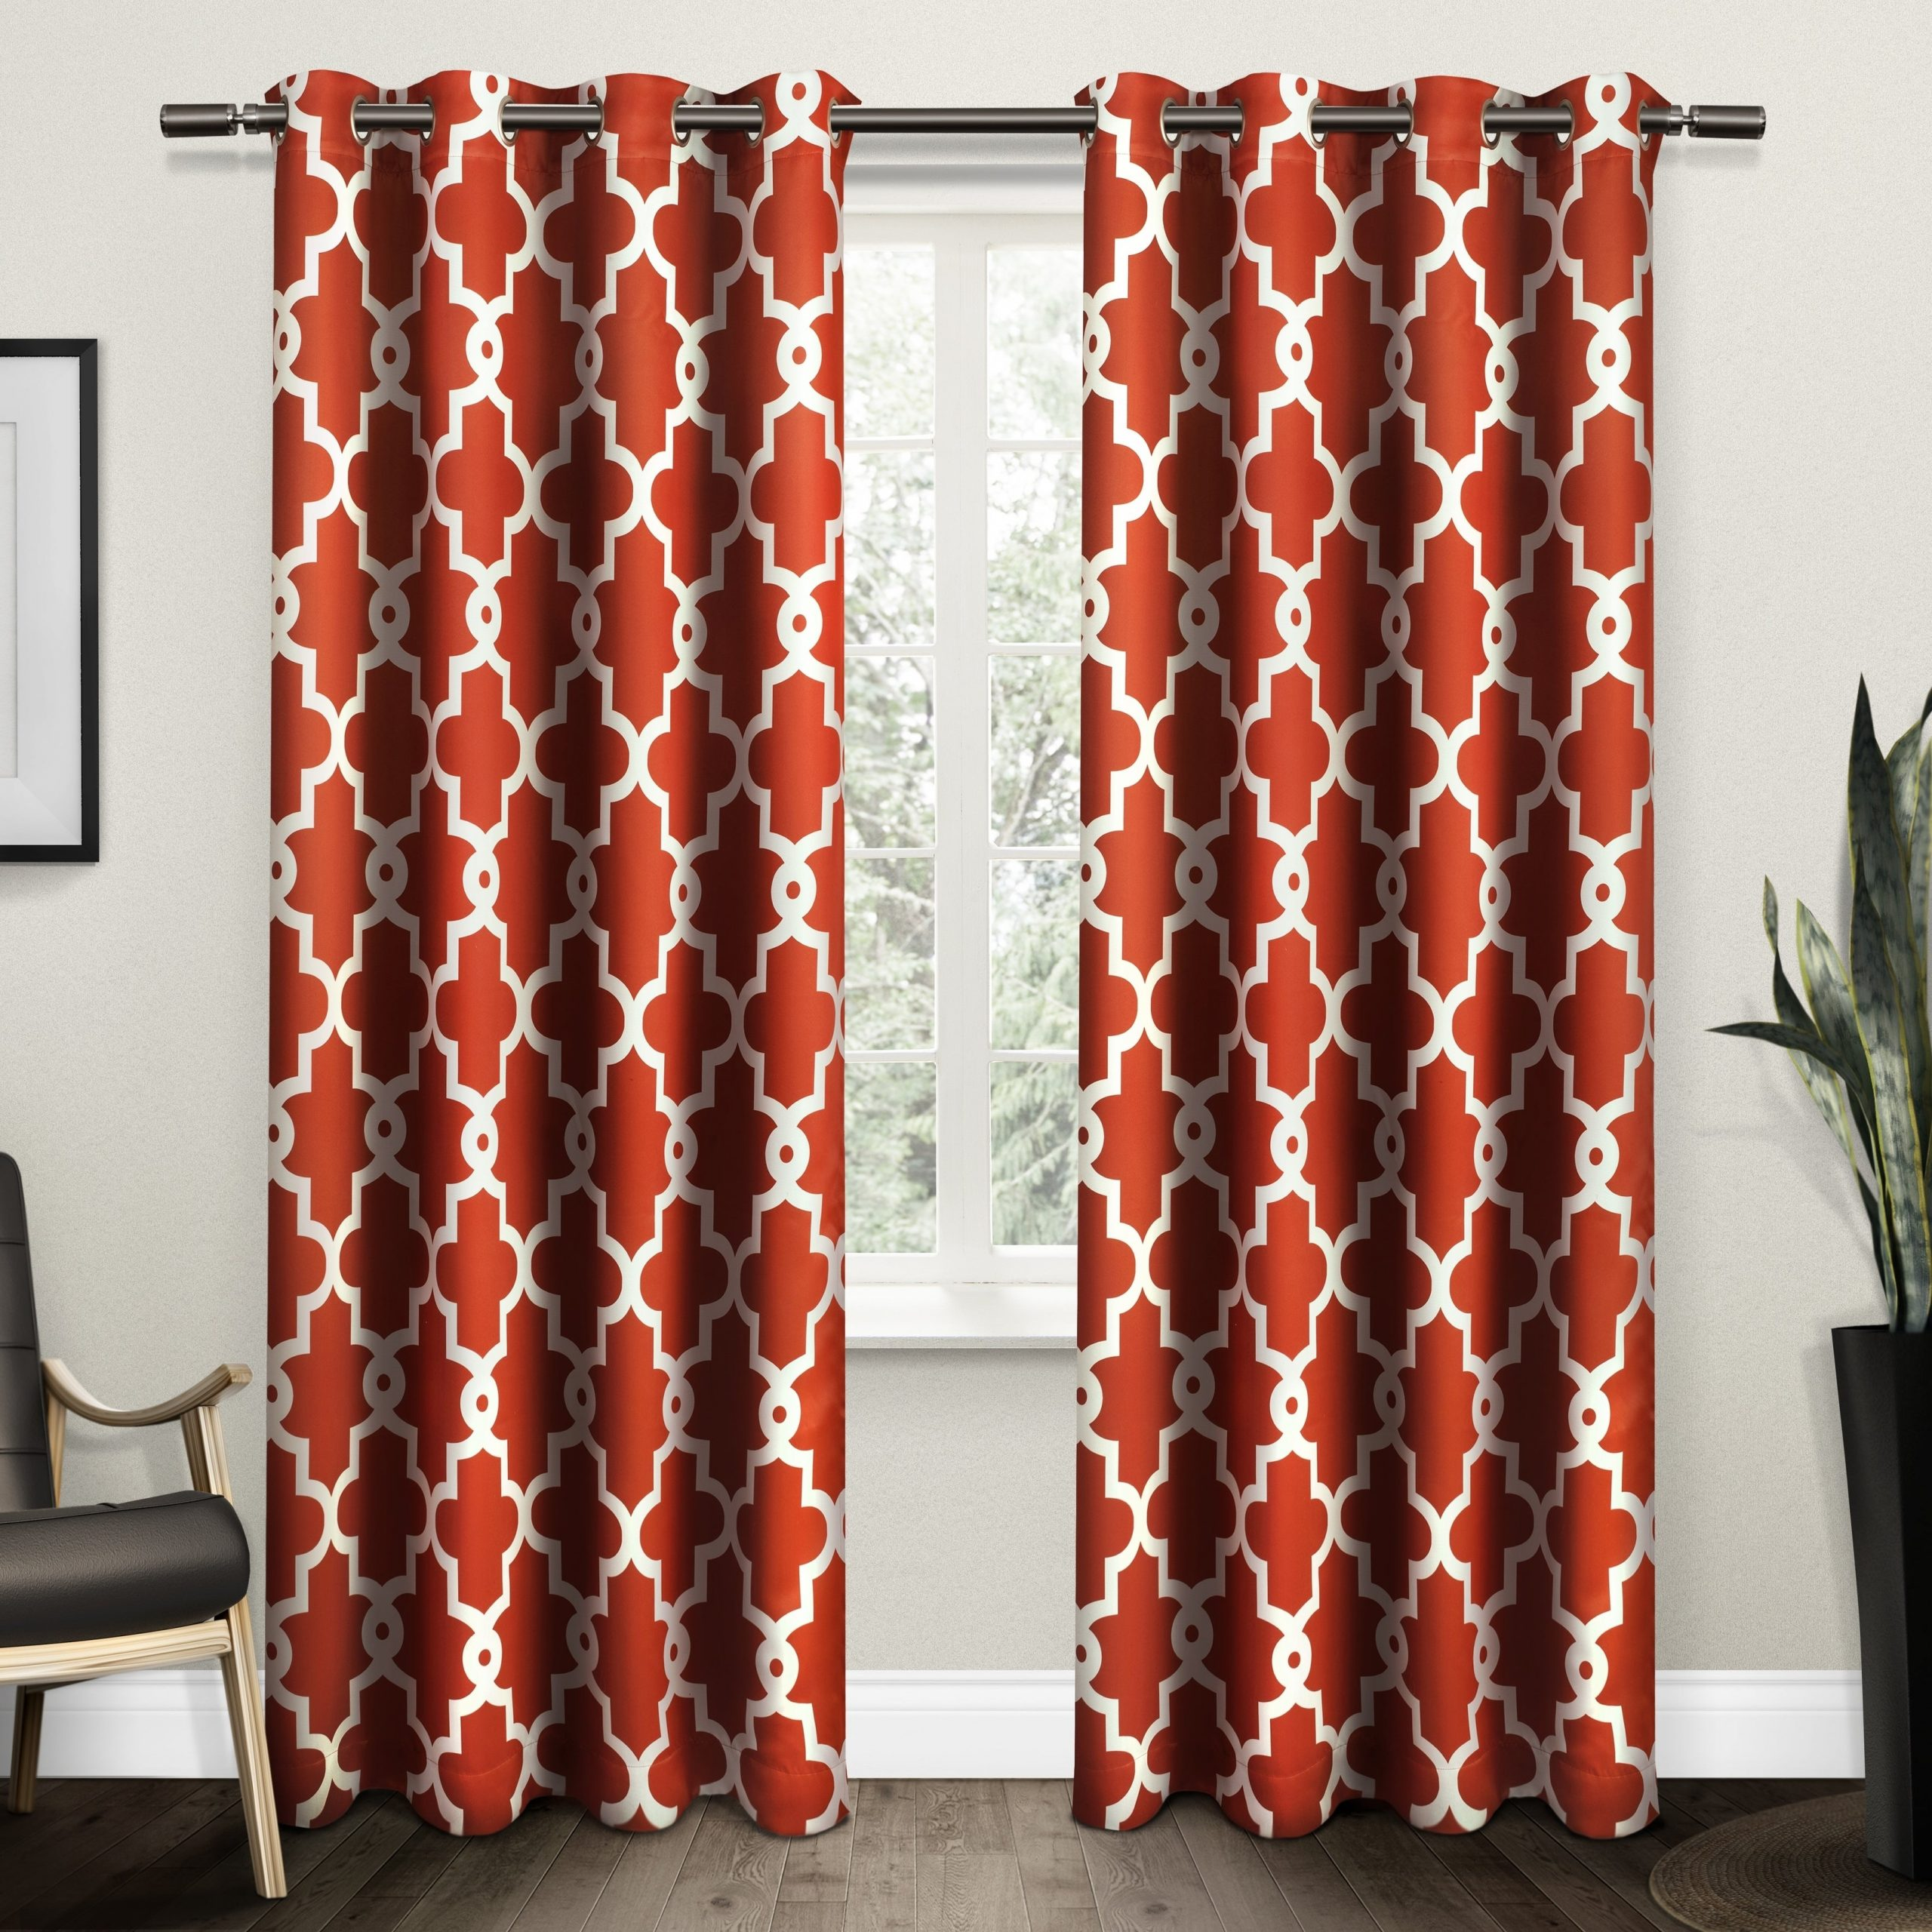 The Curated Nomad Duane Blackout Curtain Panel Pair For Popular The Curated Nomad Duane Jacquard Grommet Top Curtain Panel Pairs (View 4 of 21)